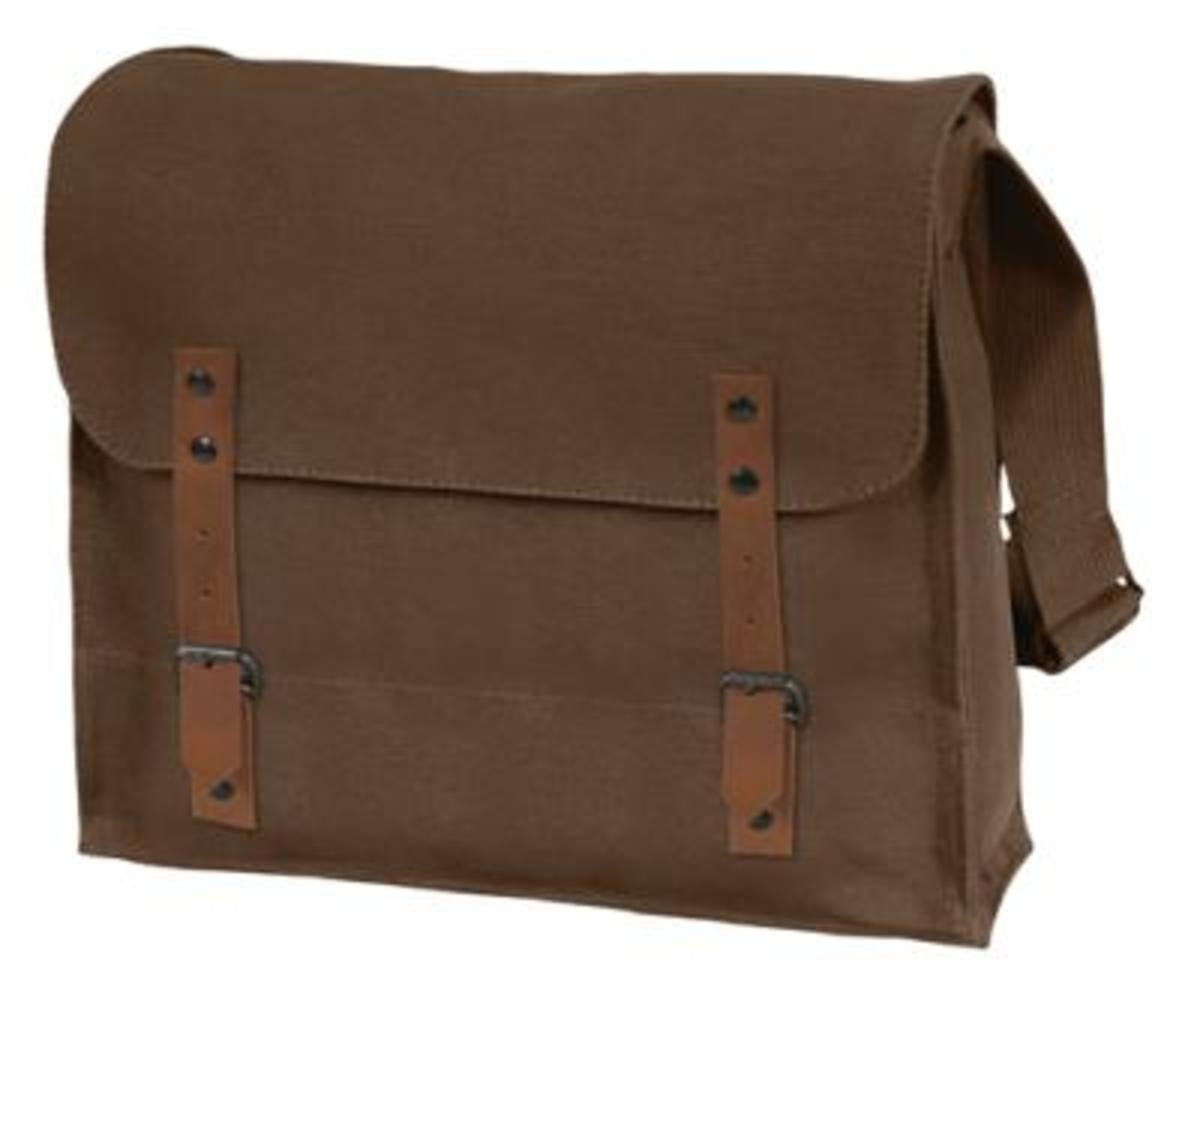 Rothco Canvas Medic Bag/No Imprint, Brown by Rothco (Image #1)